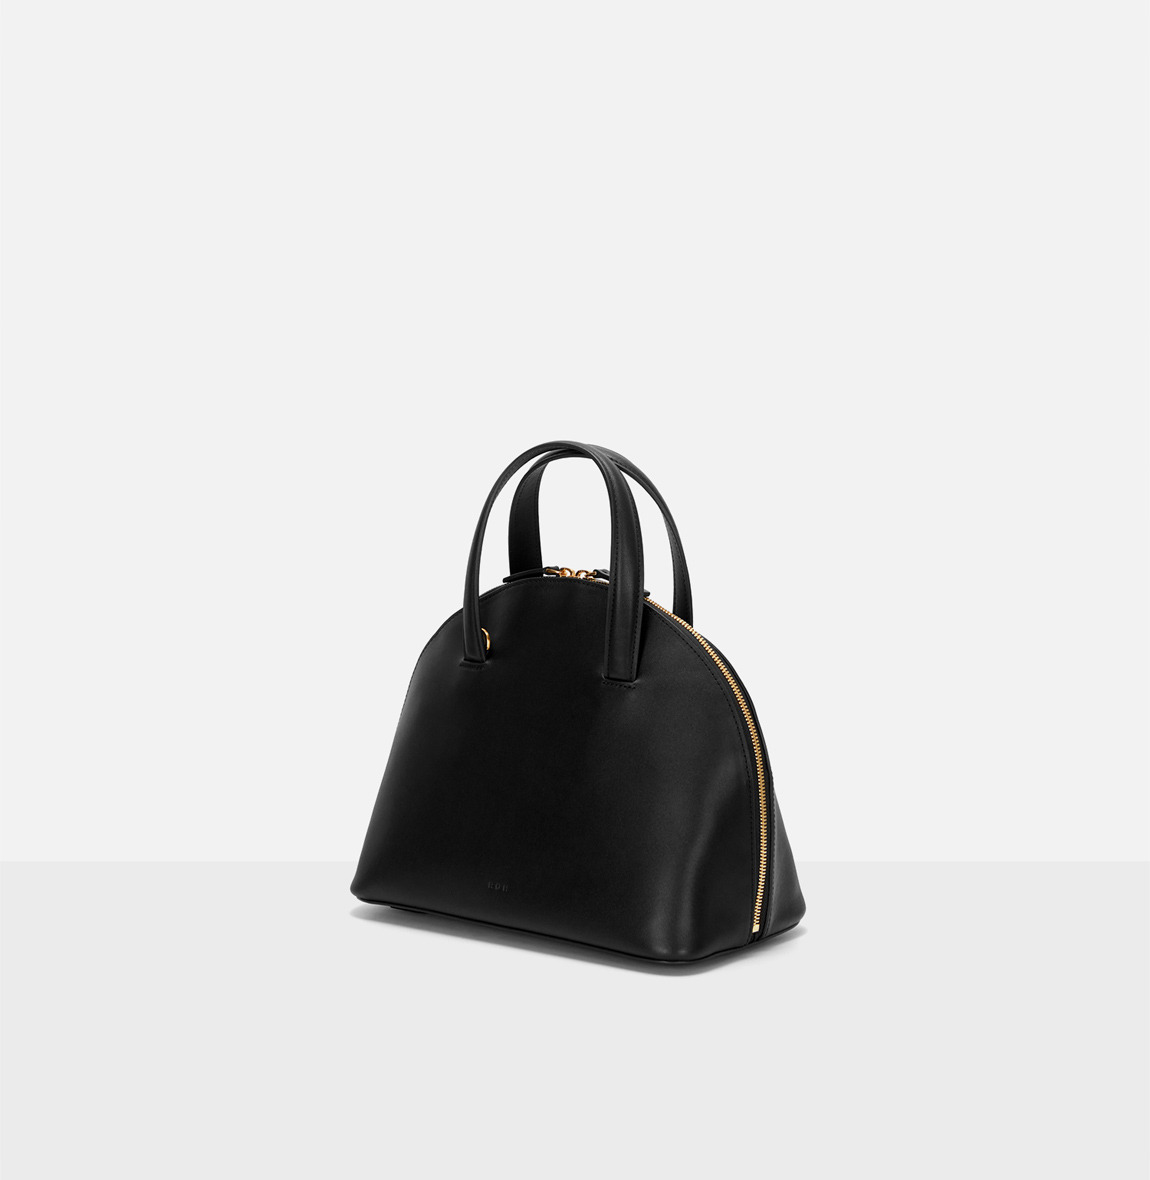 Cloche medium tote bag Black